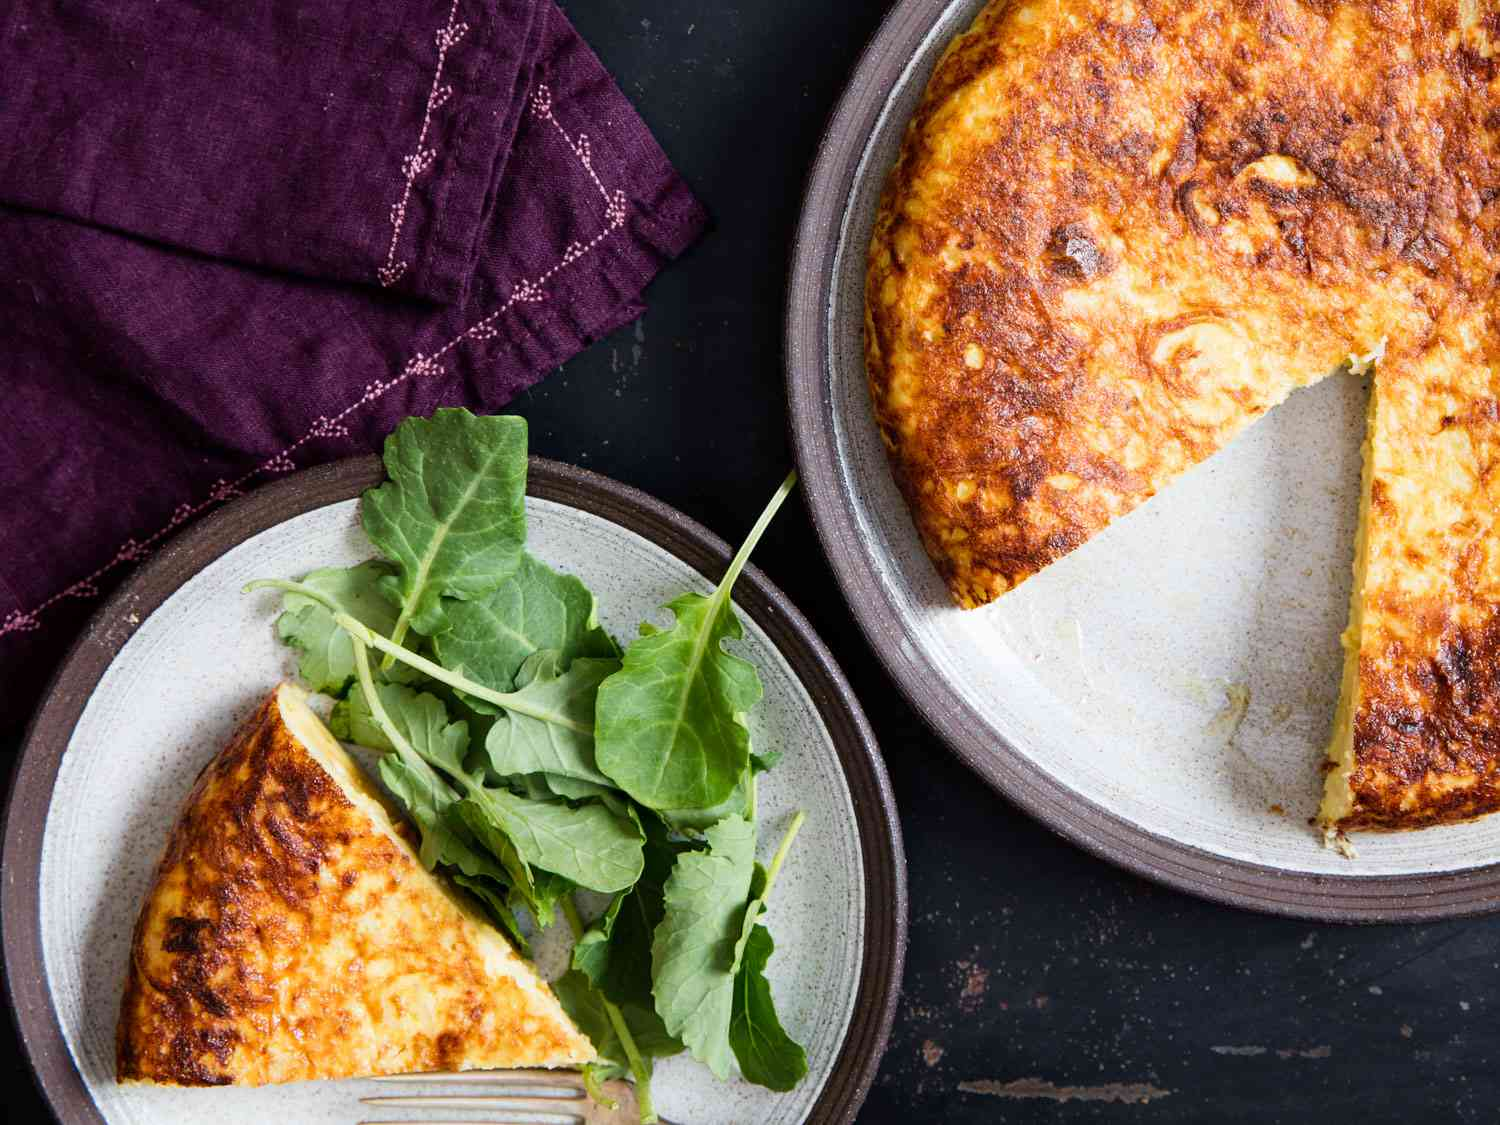 Slice of potato and onion Spanish tortilla on a plate with salad and the rest of the tortilla on the side.